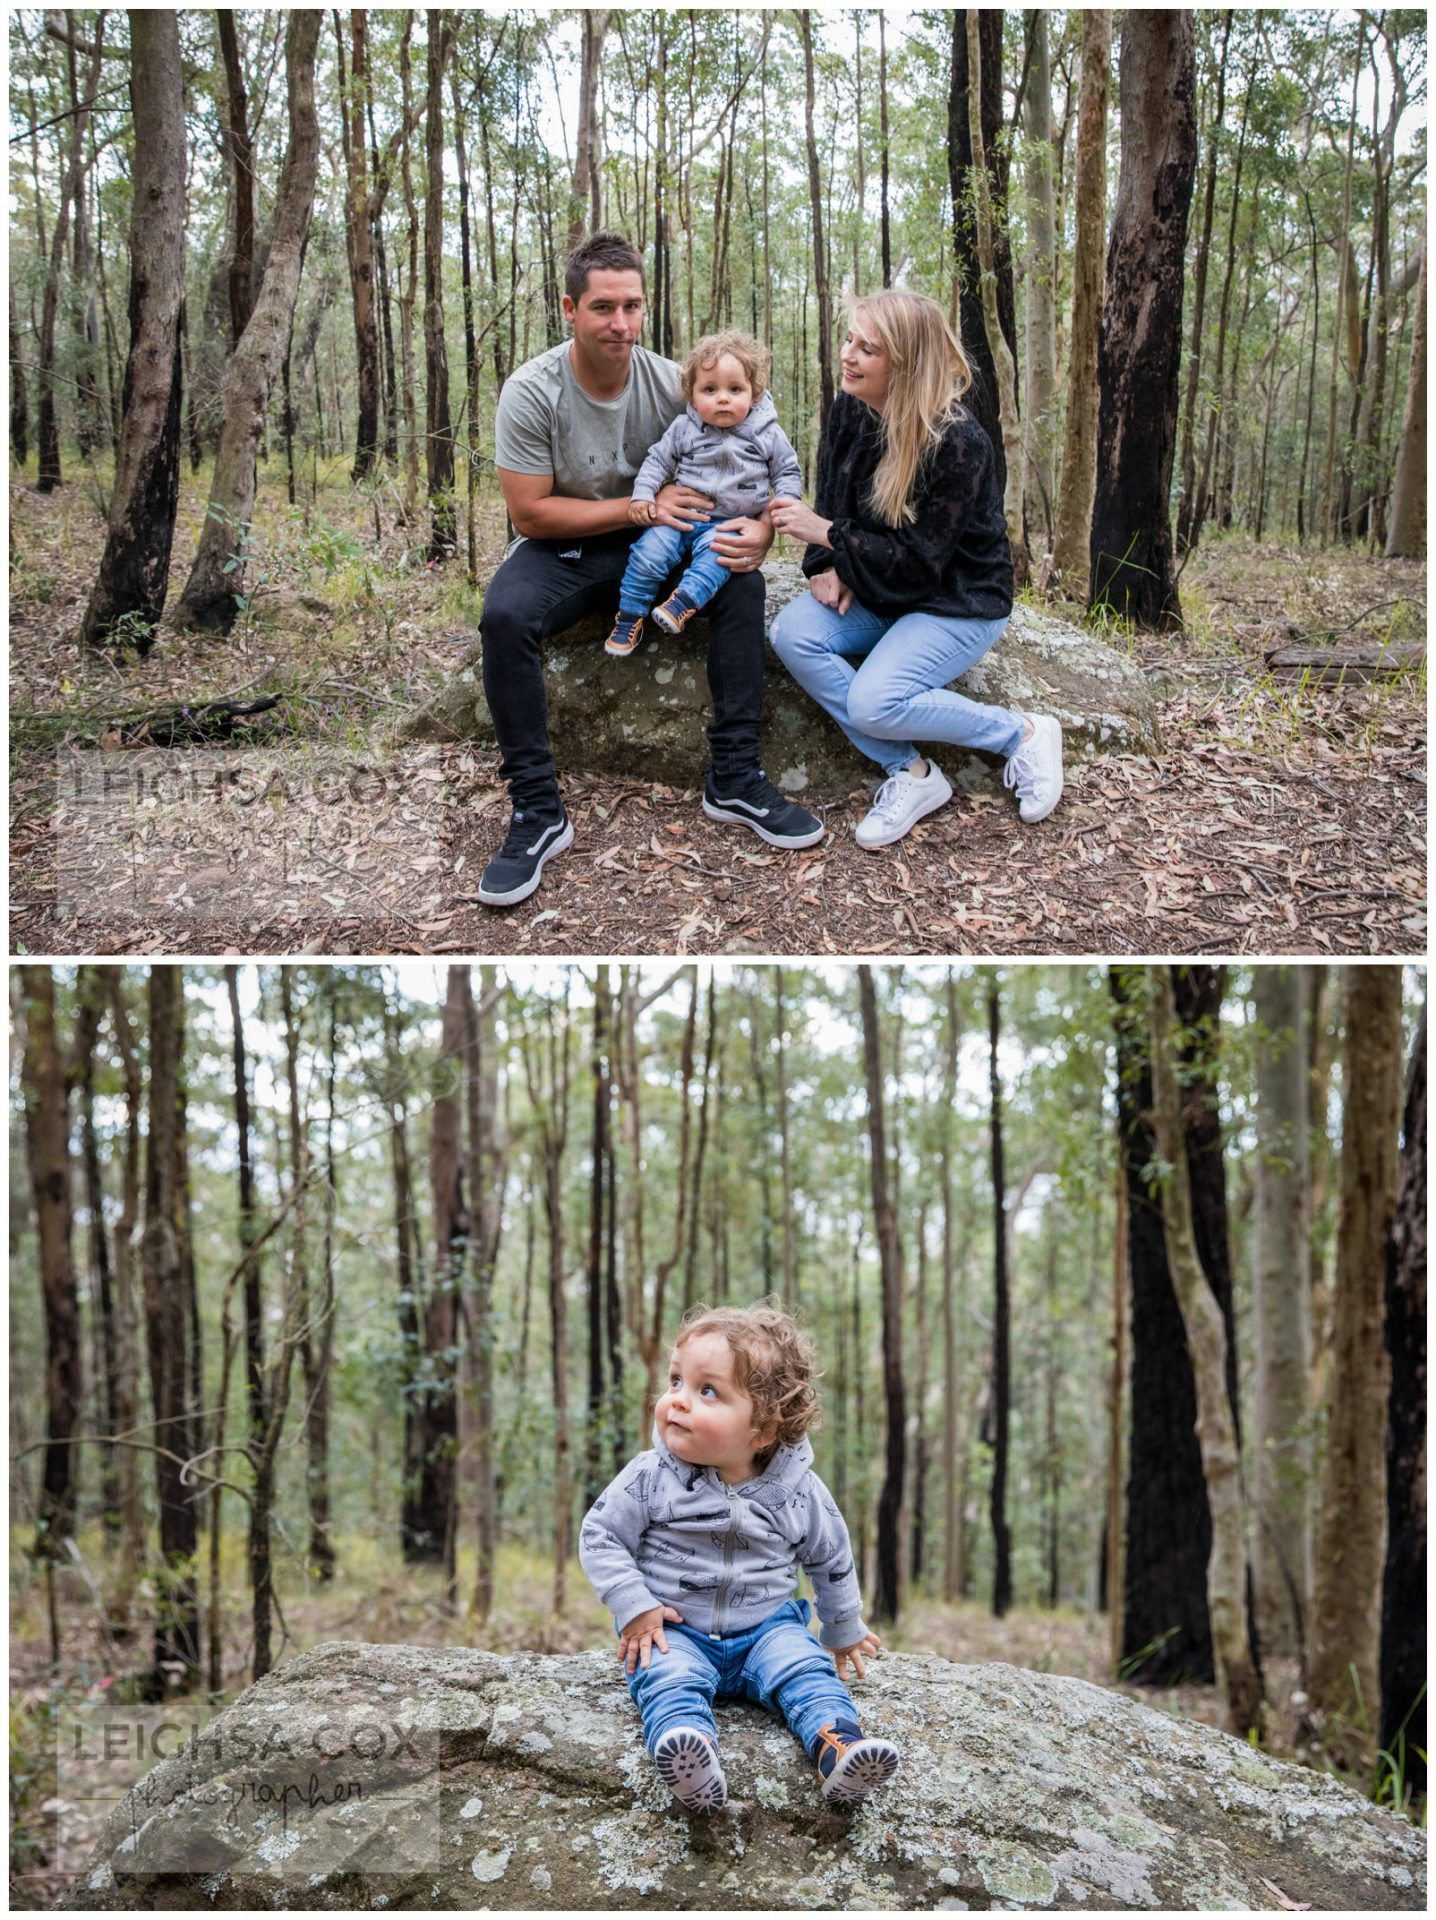 Mt sugarloaf portraits